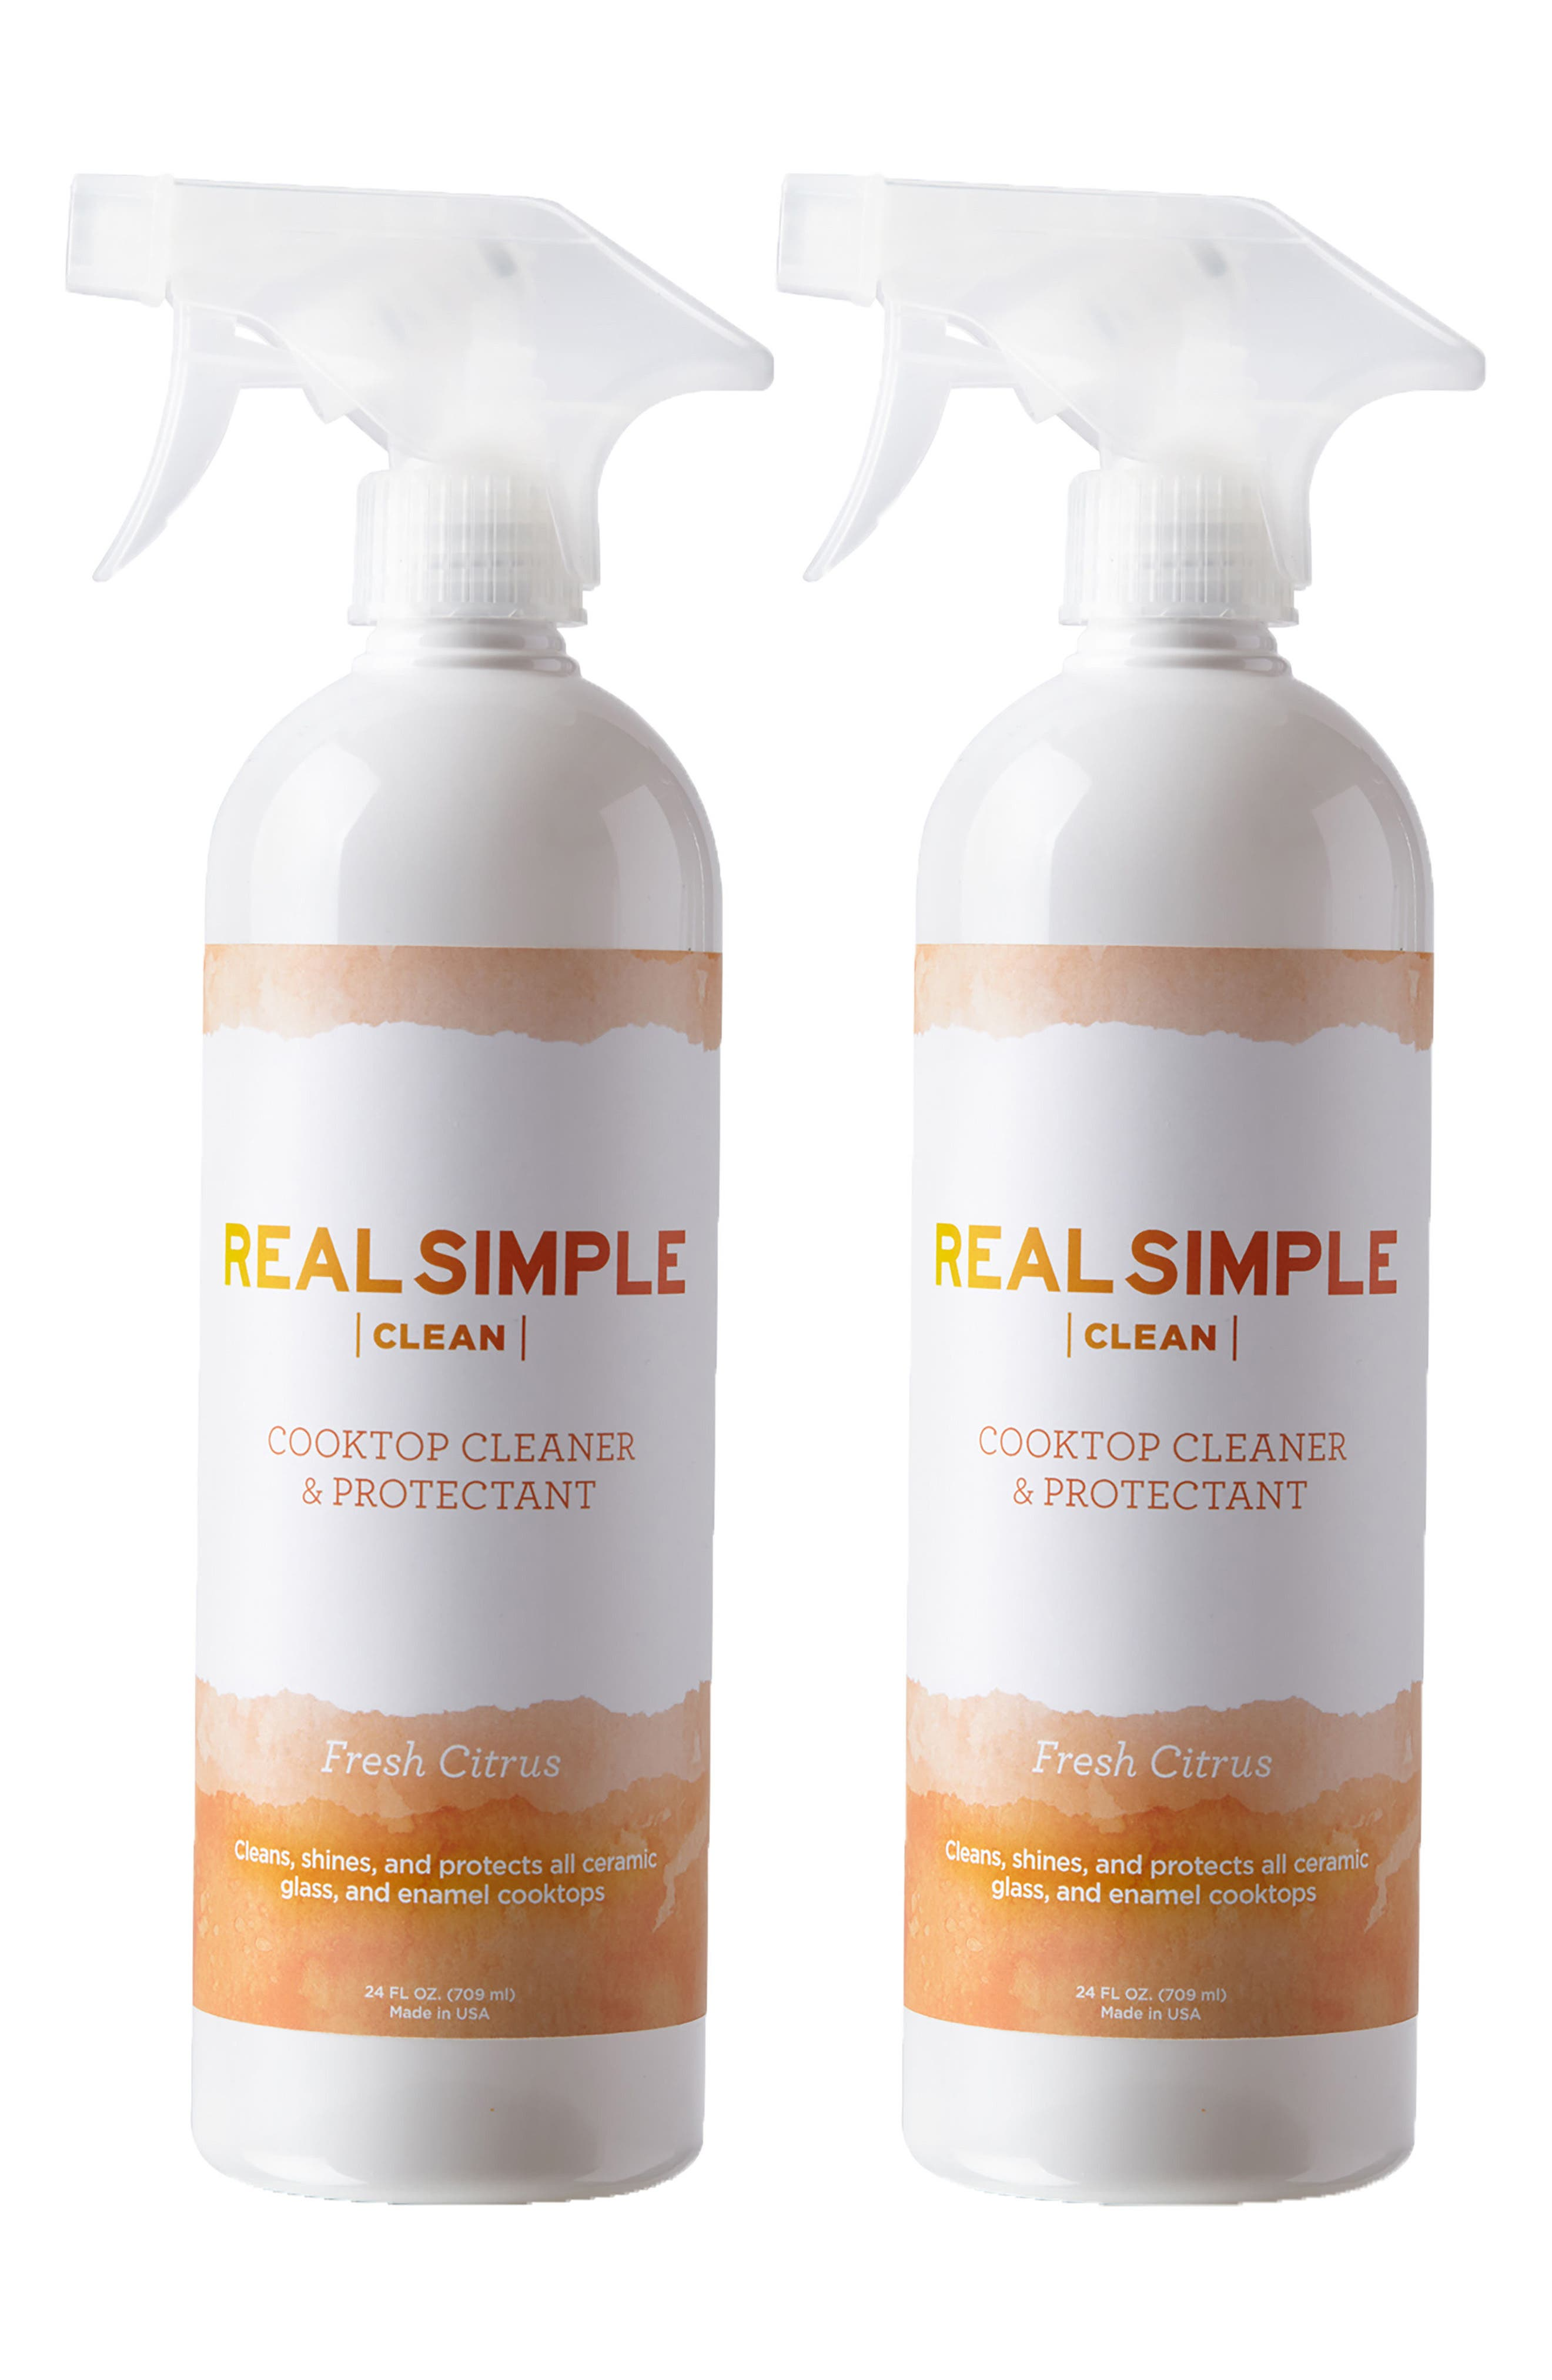 Alternate Image 1 Selected - Real Simple 2-Pack Cooktop Cleaner